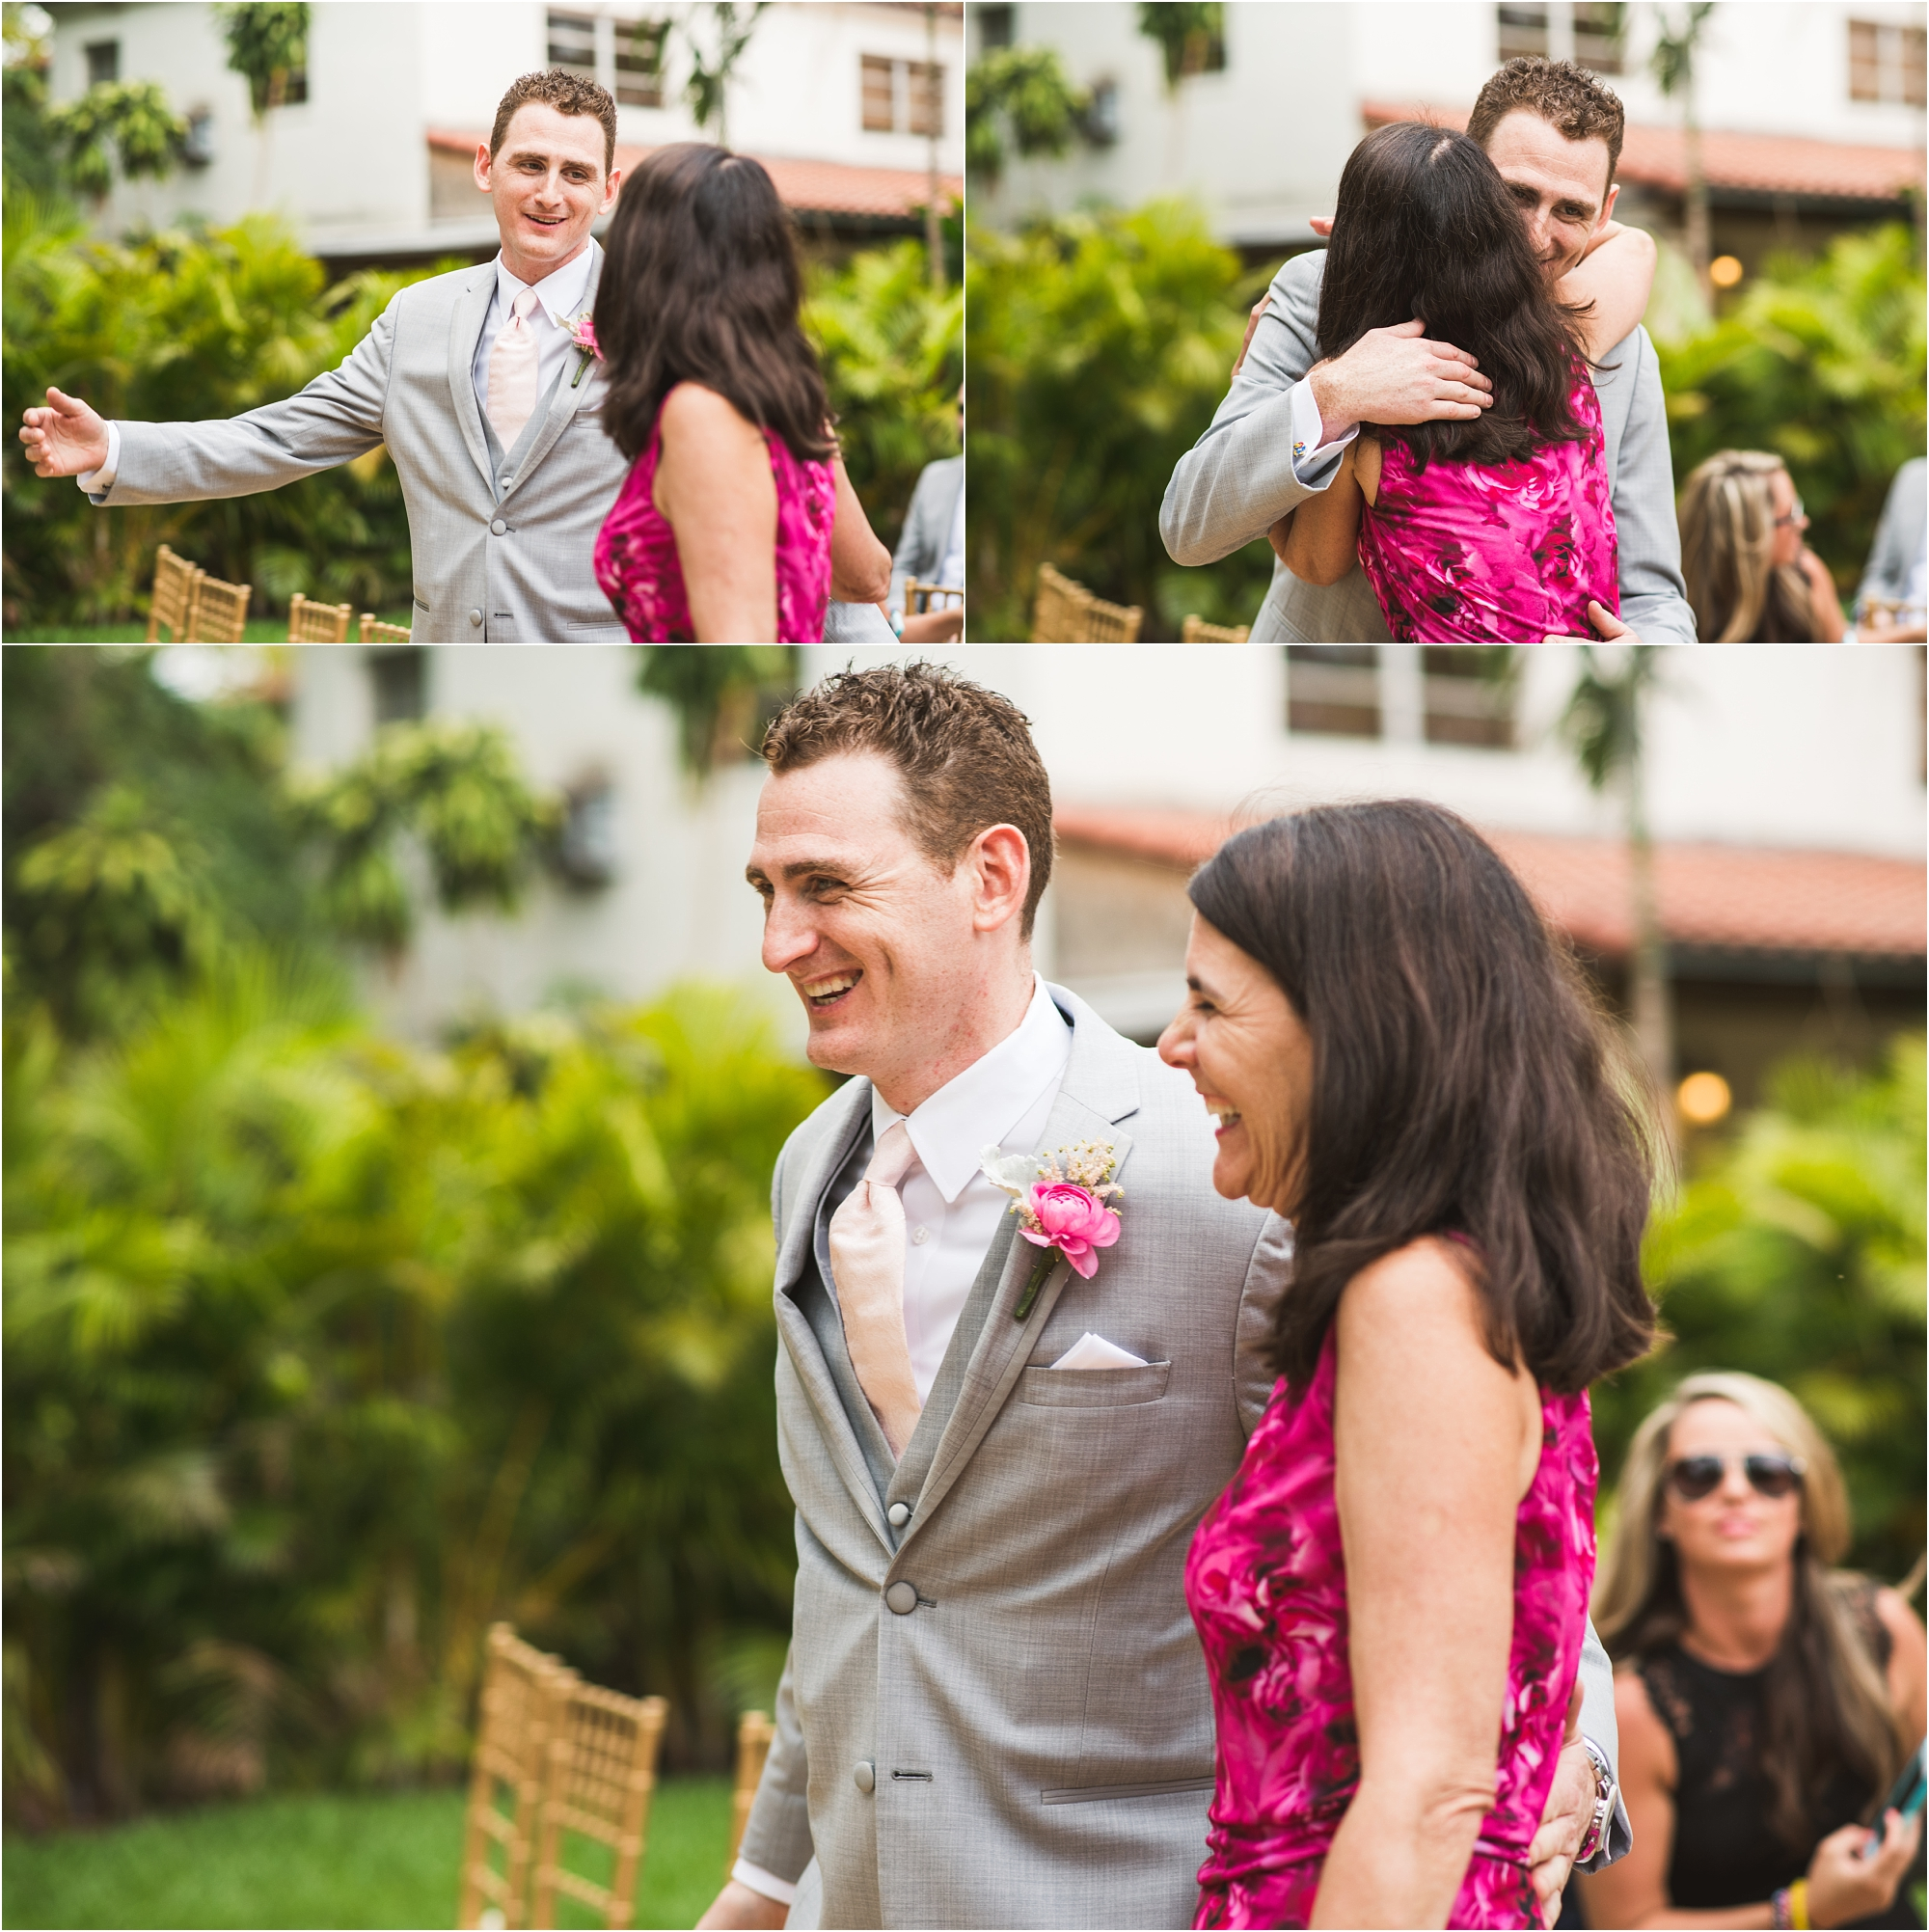 Spanish-Monastery-miami-beach-outdoor-elegant-wedding-photographer-jessenia-gonzalez_1148.jpg